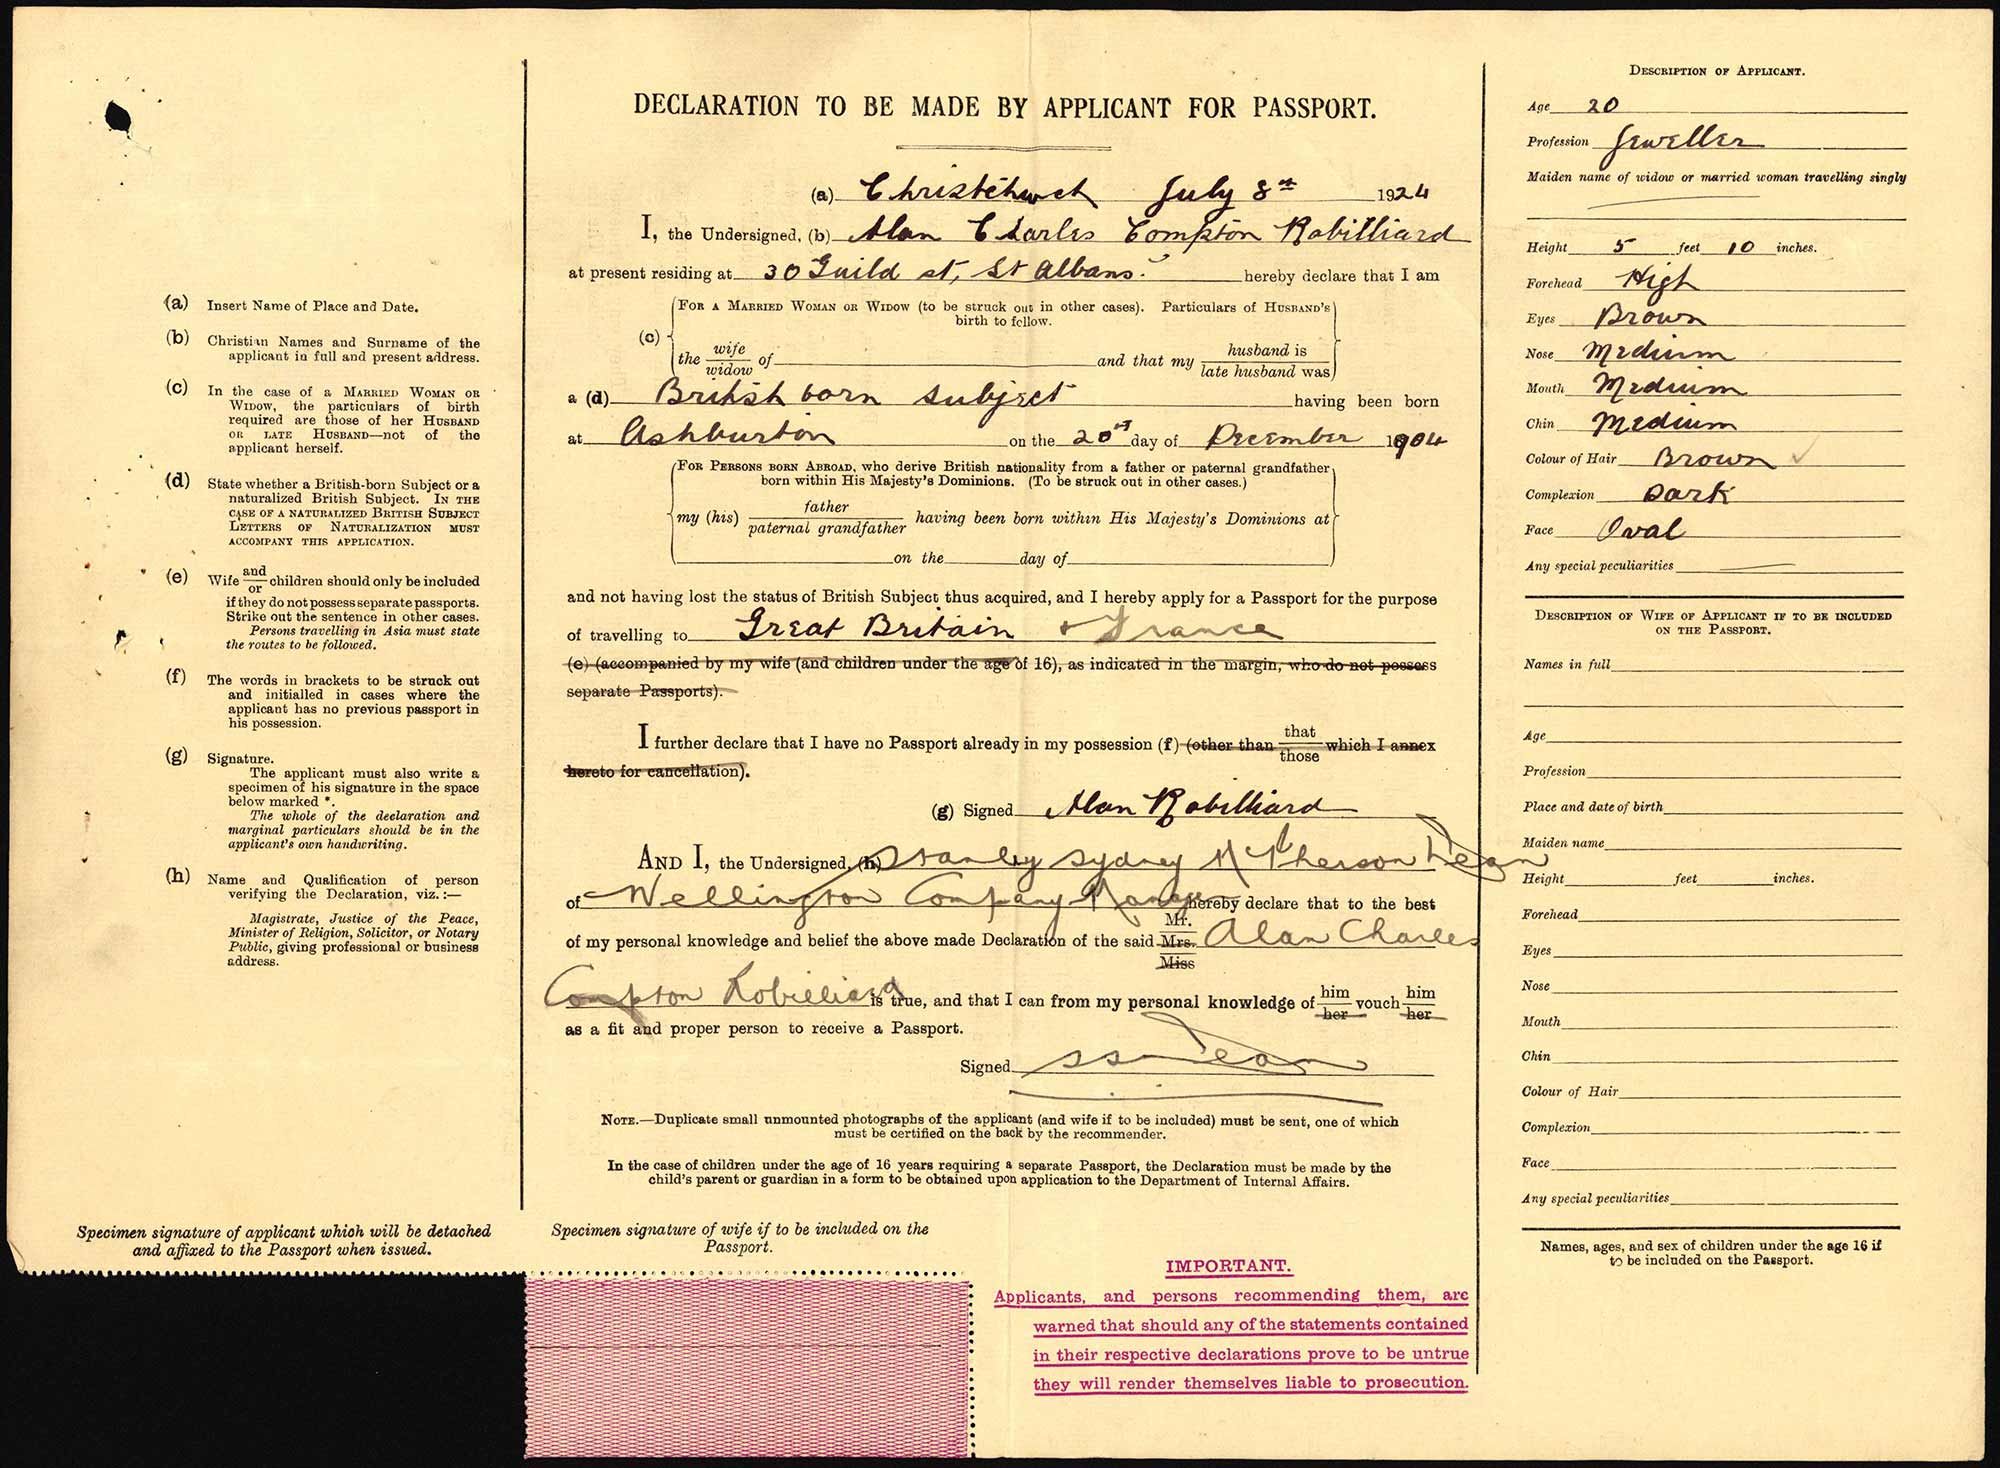 Alan Charles Compton Robilliard passport application